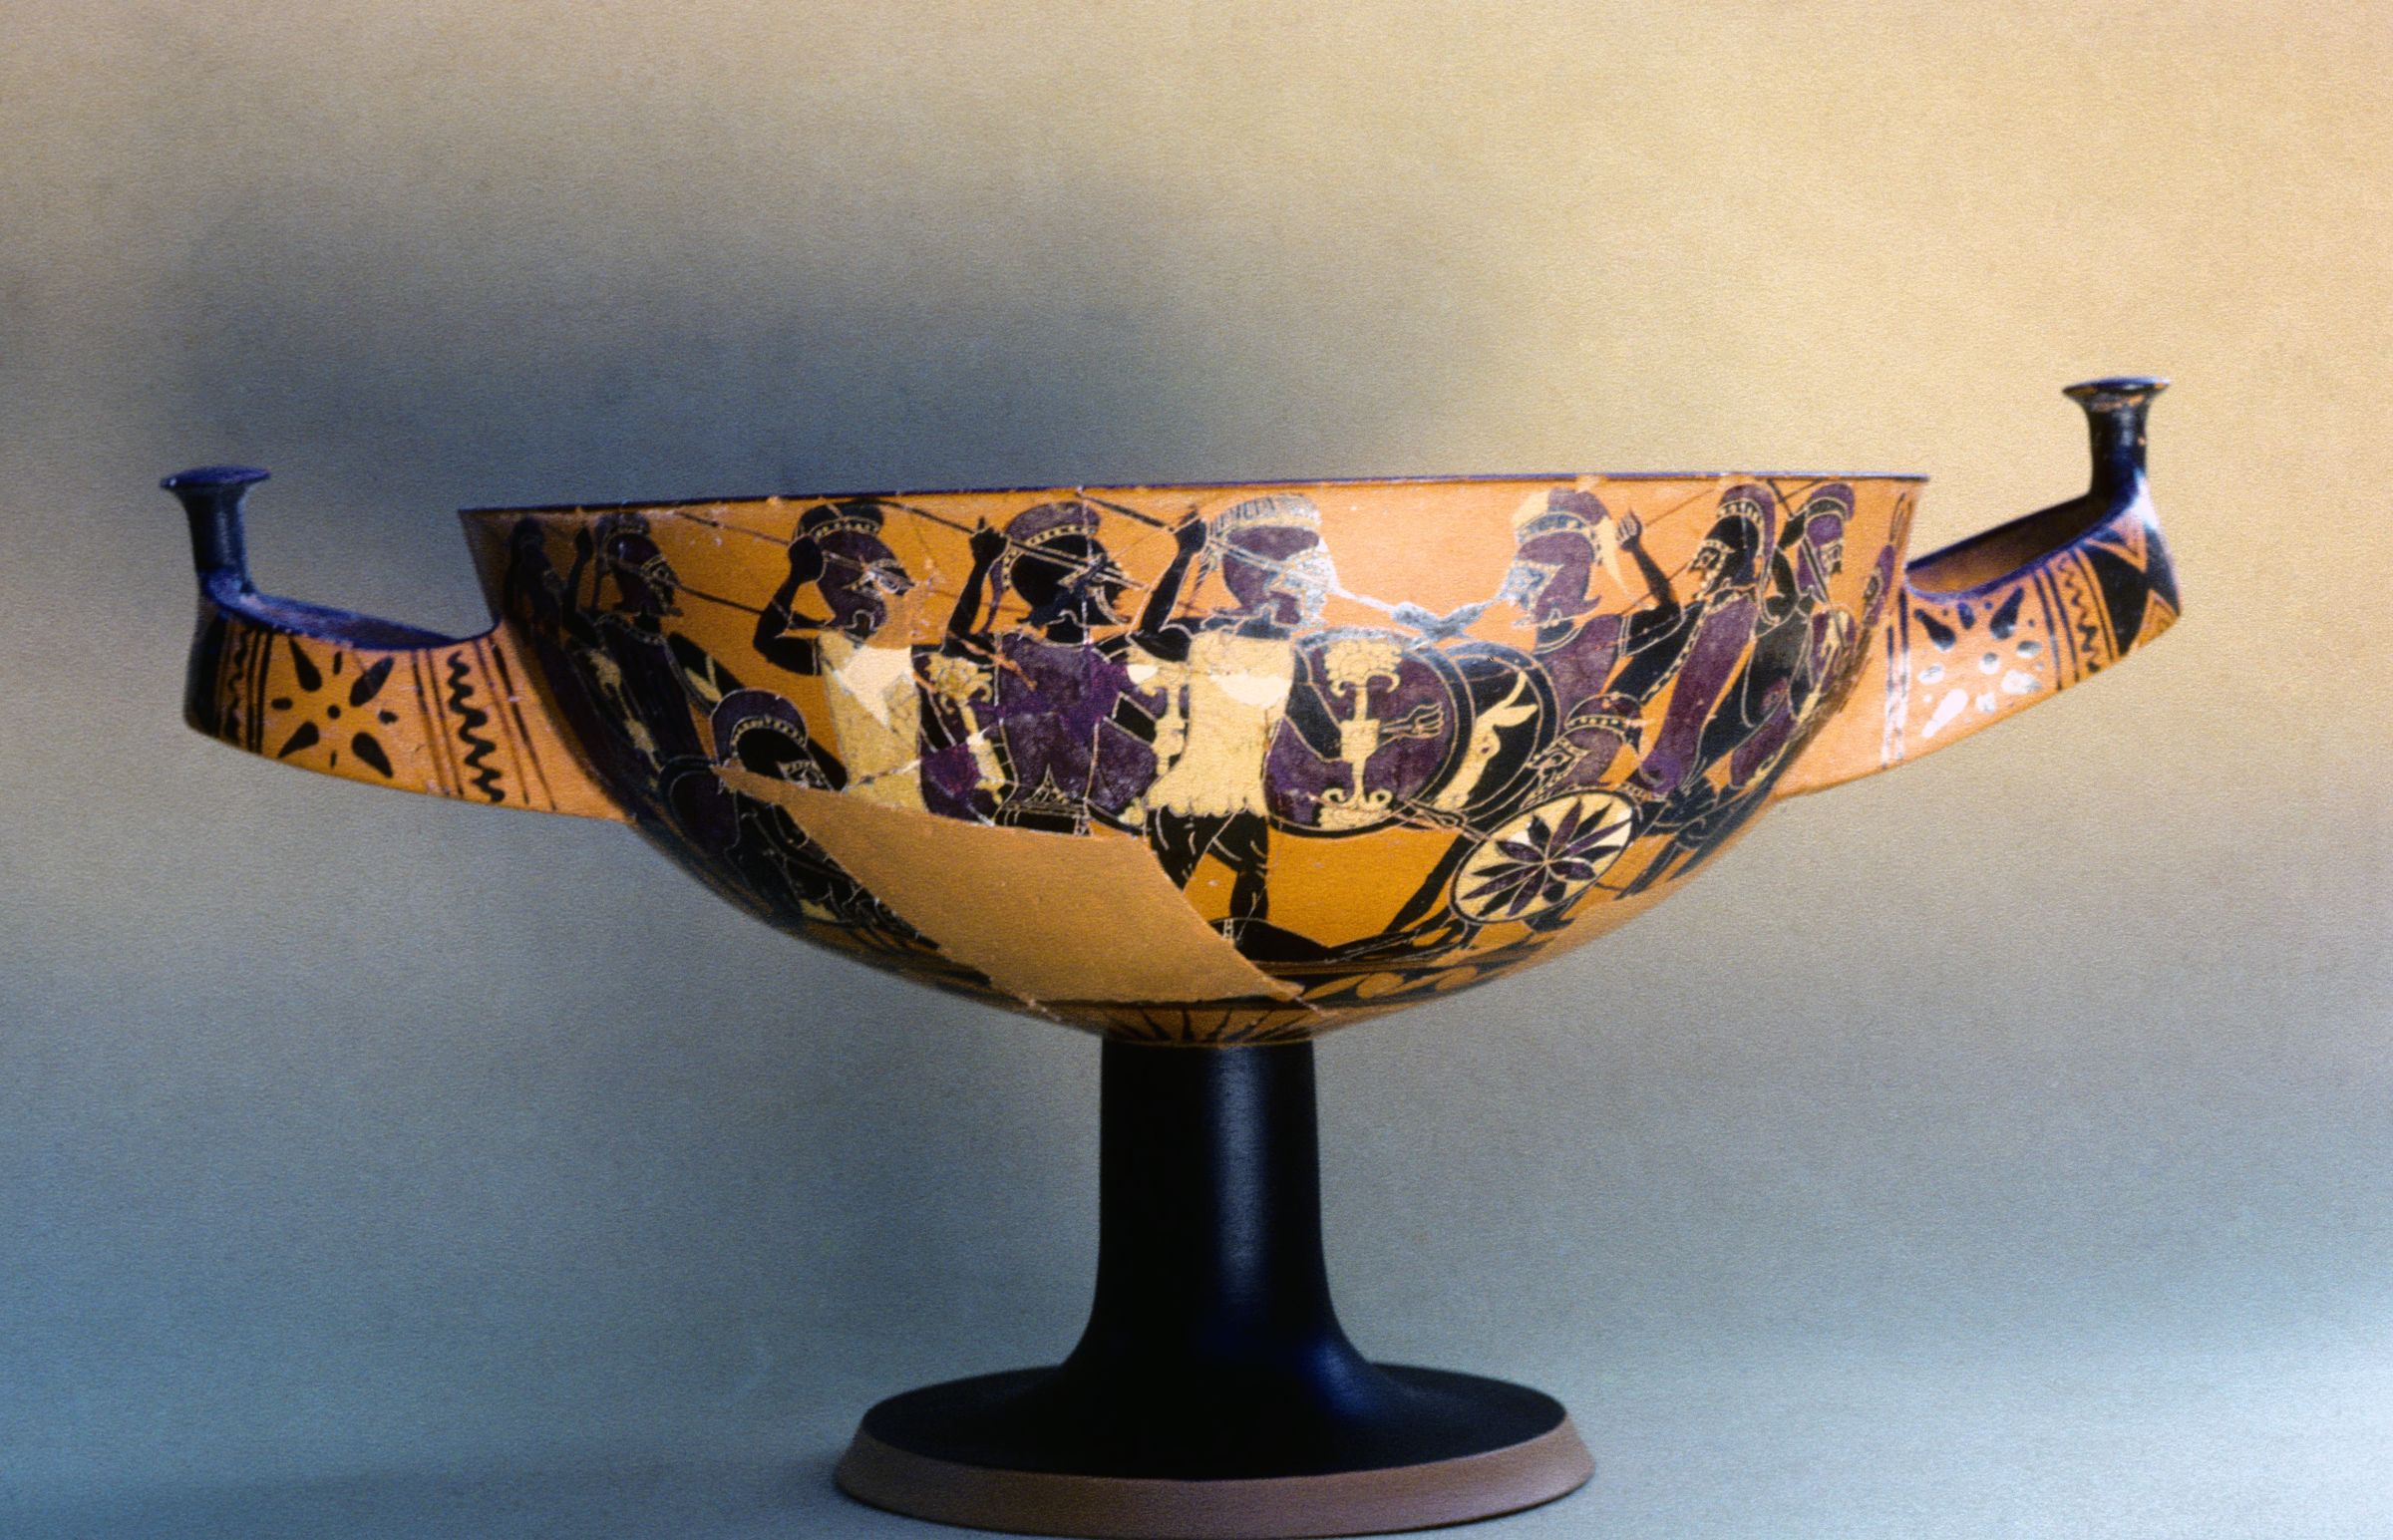 Attic black-figure Merrythought cup